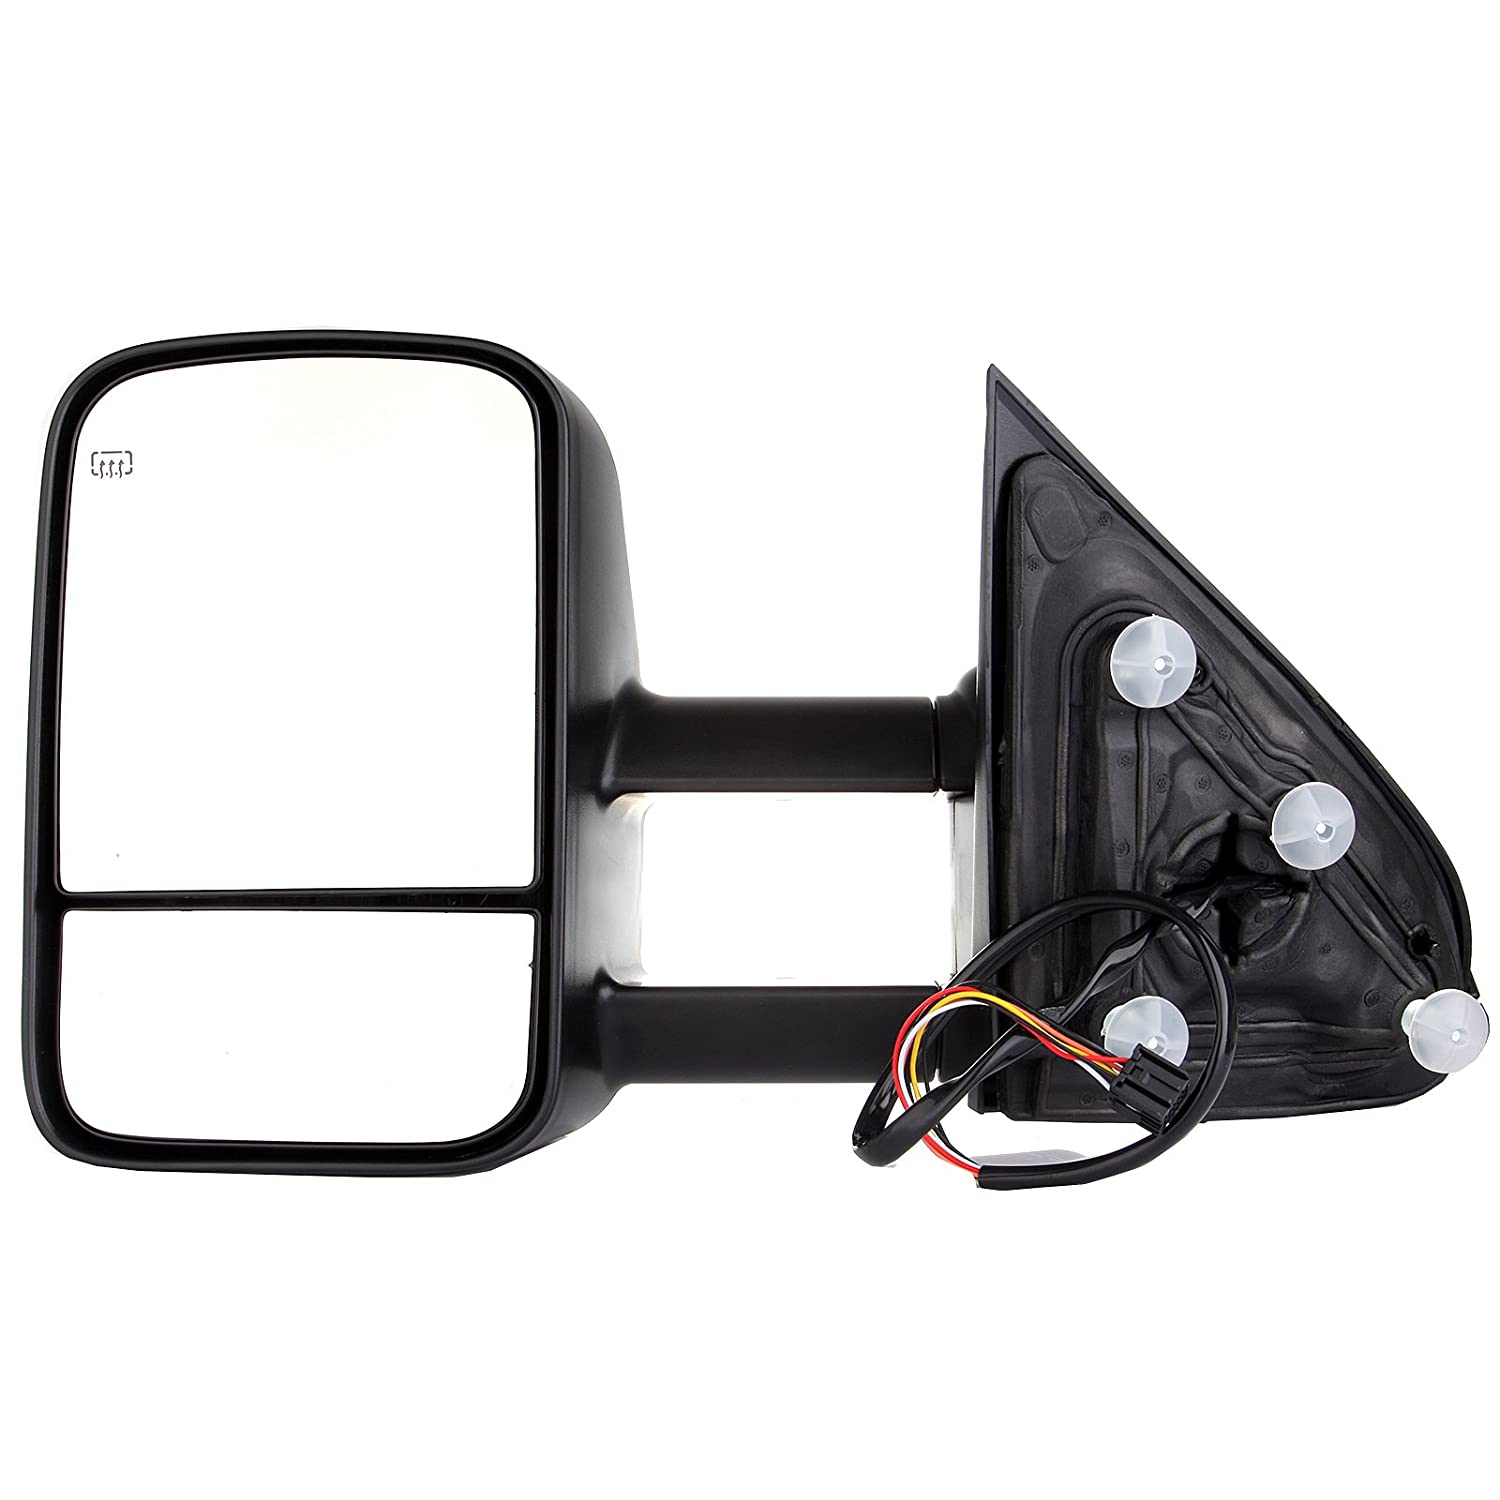 Chevy Gmc Towing Mirrors Pair Rear View For 2014 2015 Gm Mirror Wiring Diagram 2017 Silverado Sierra 1500 15 17 2500hd 3500hd With Power Control Heated